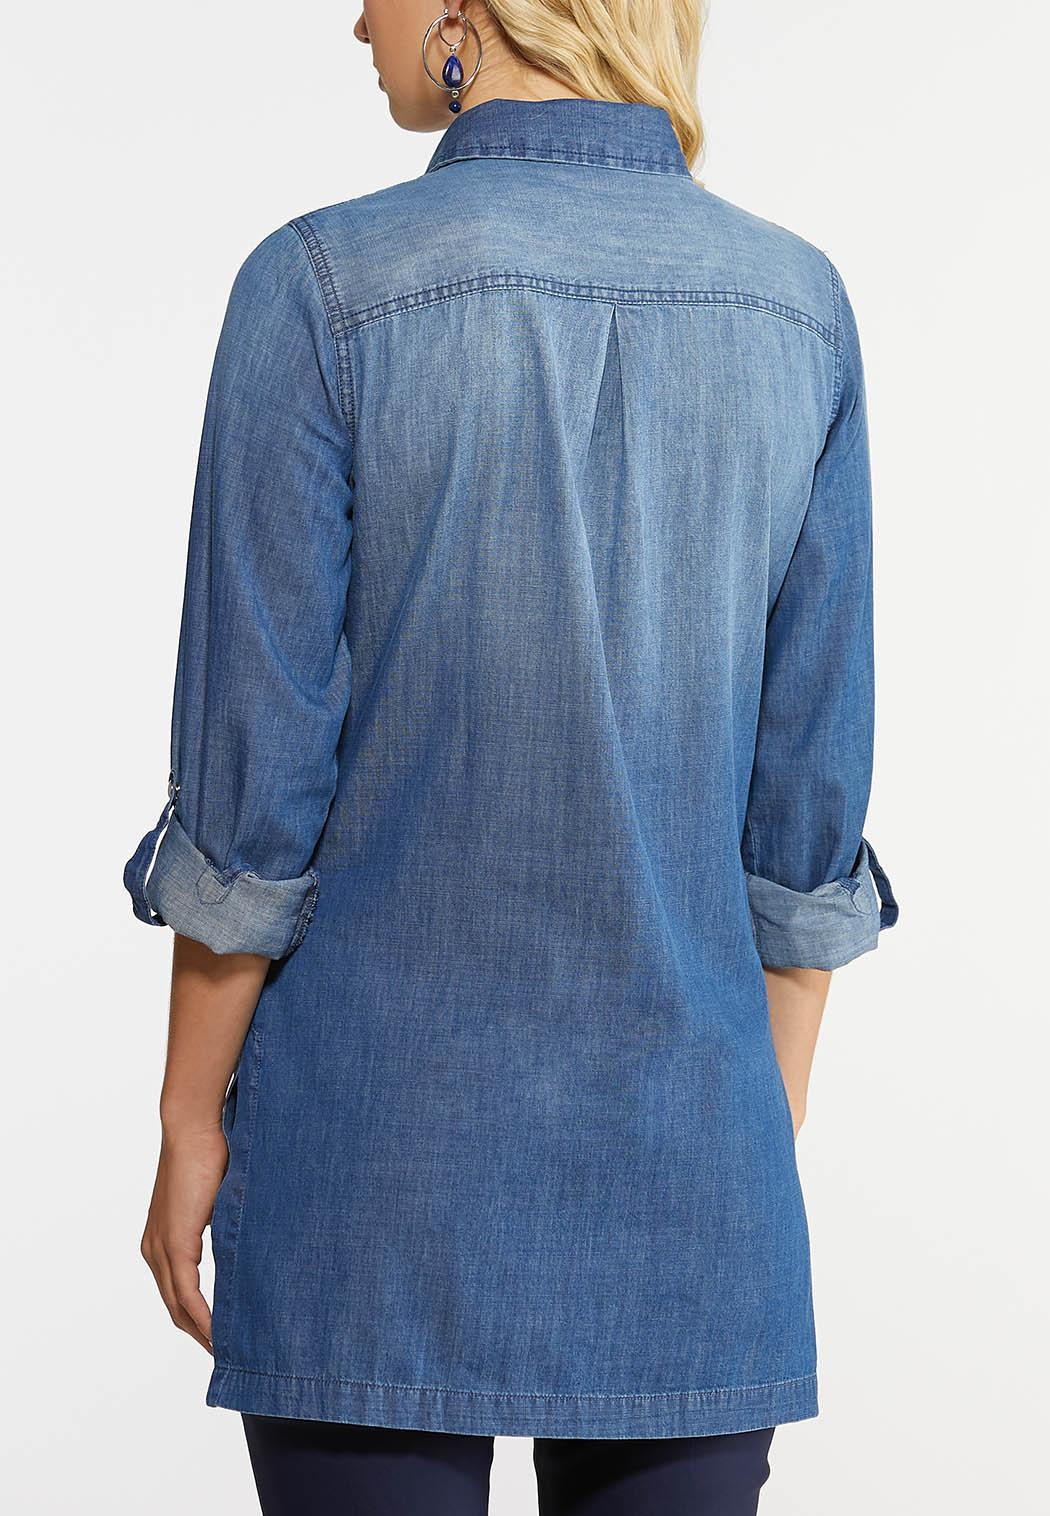 Plus Size Chambray Tunic Top (Item #43968570)